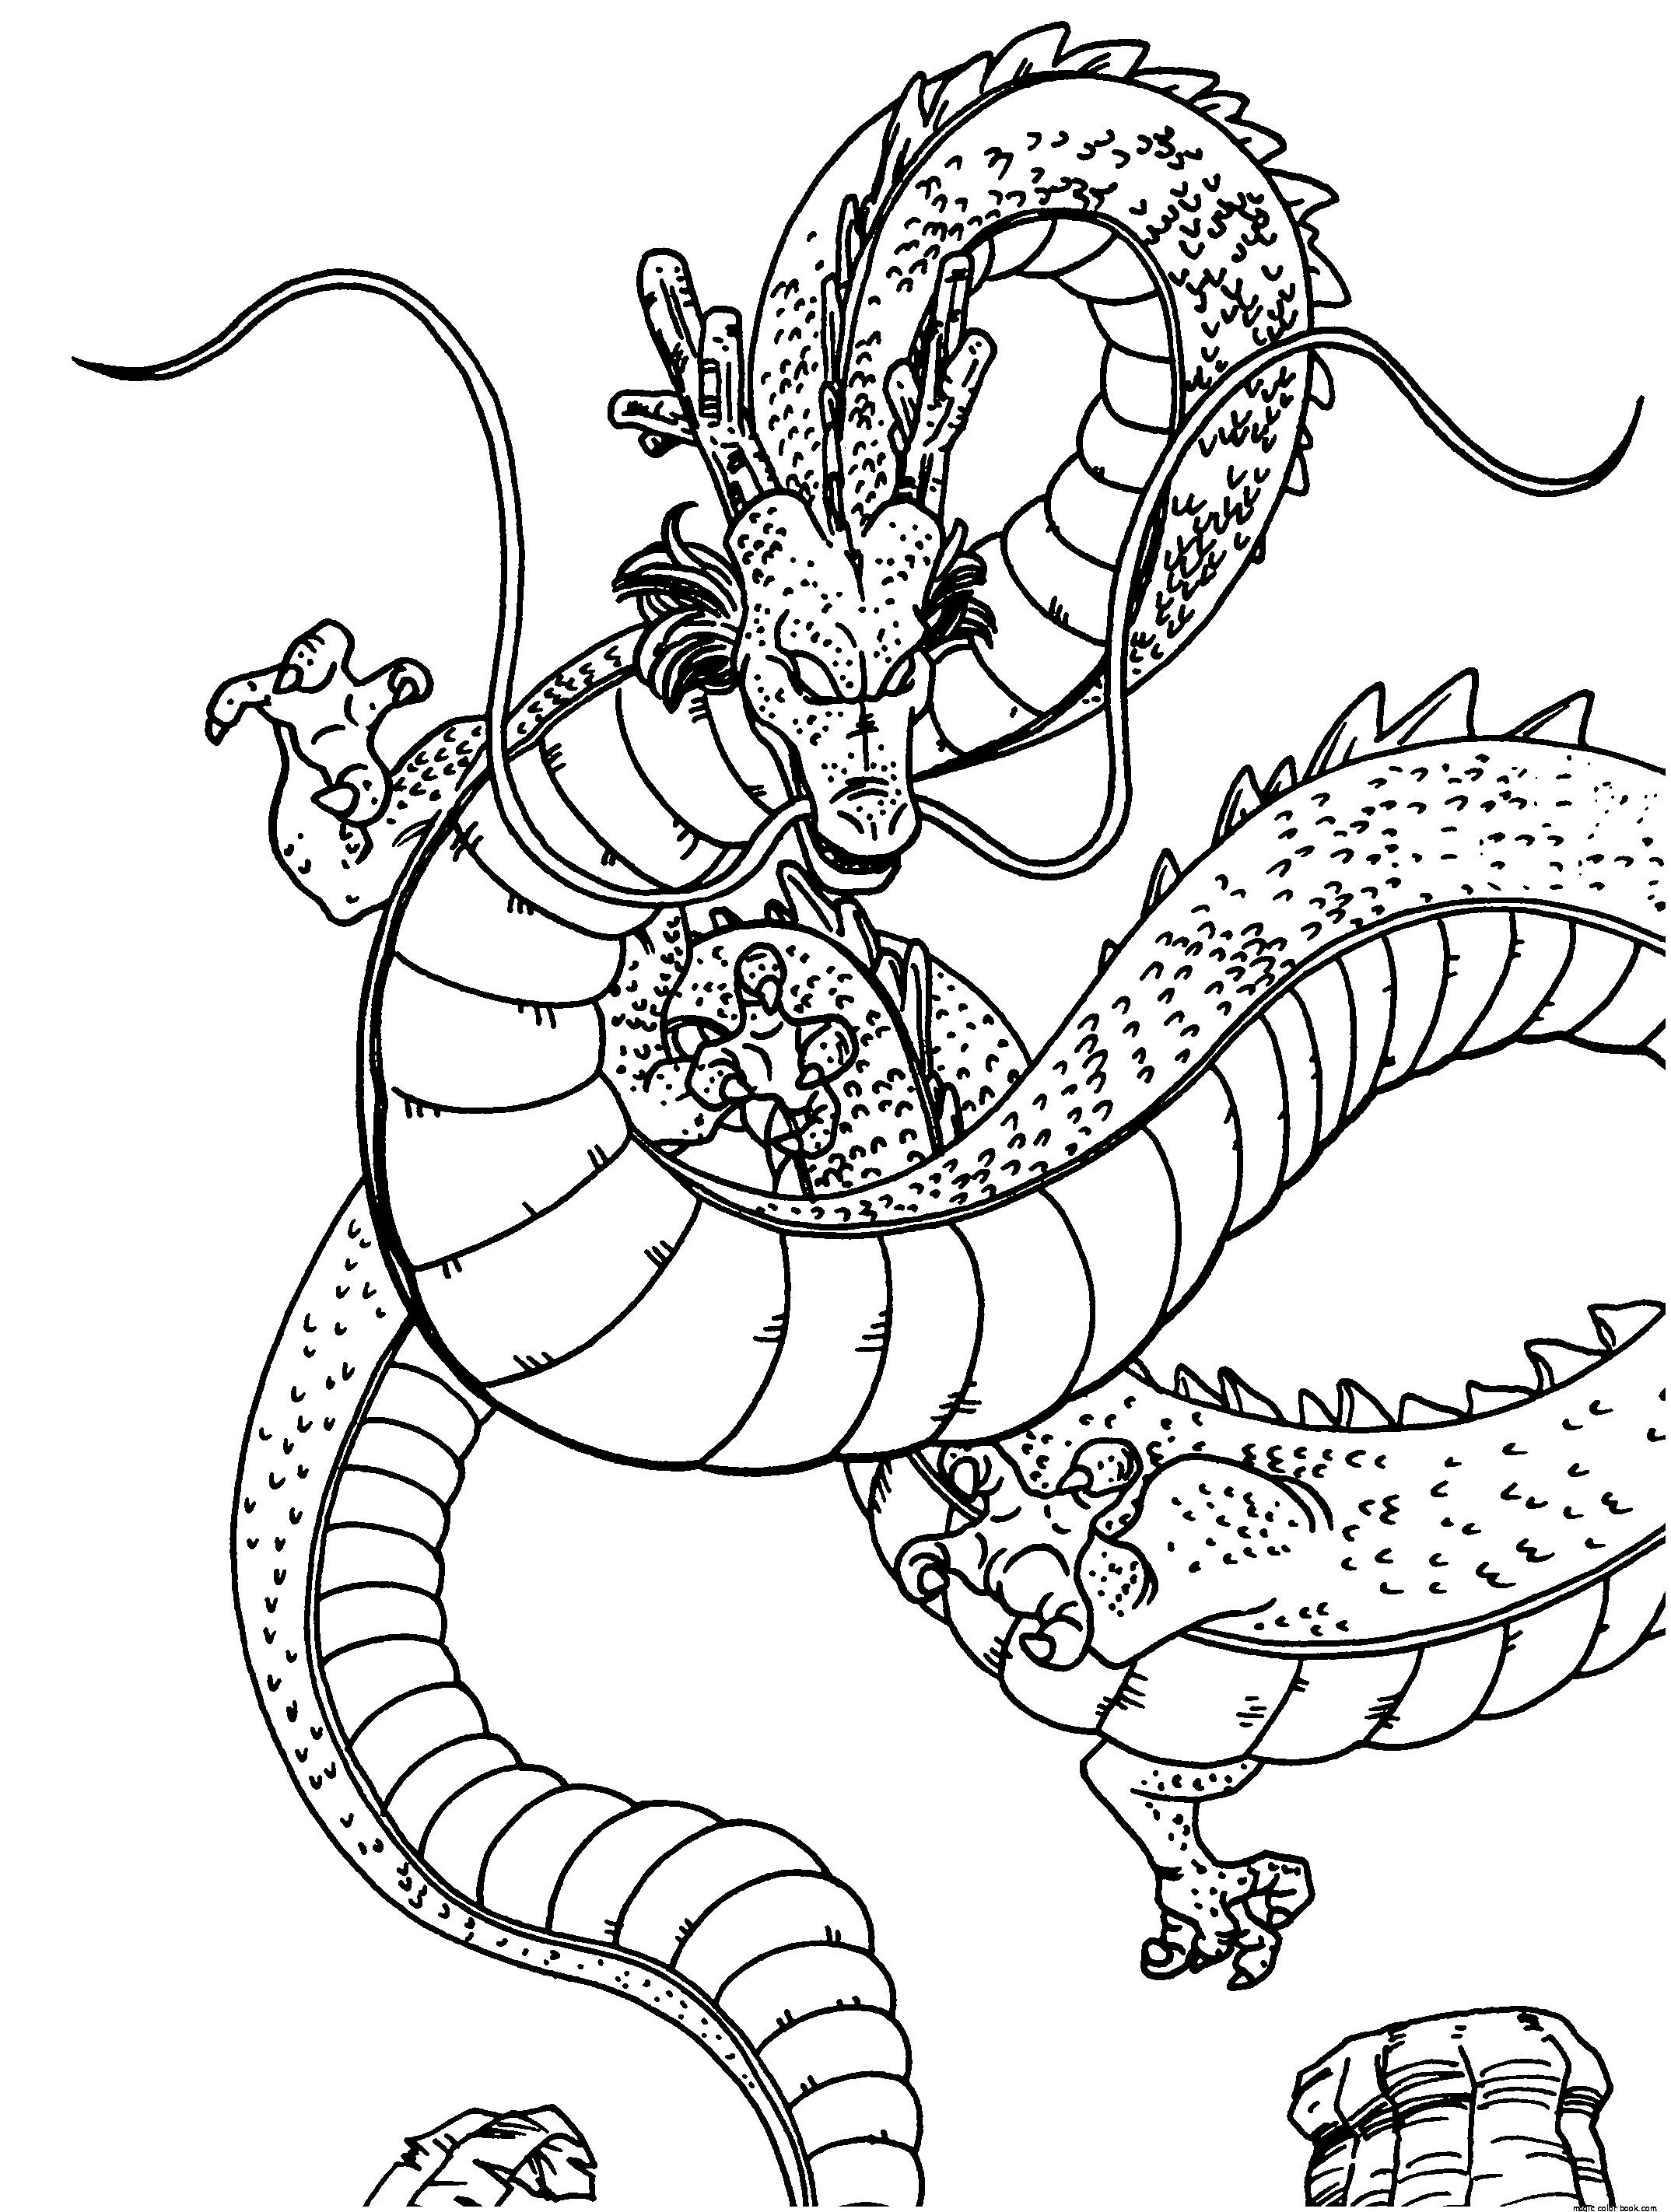 Magic image inside dragon ball z coloring pages printable